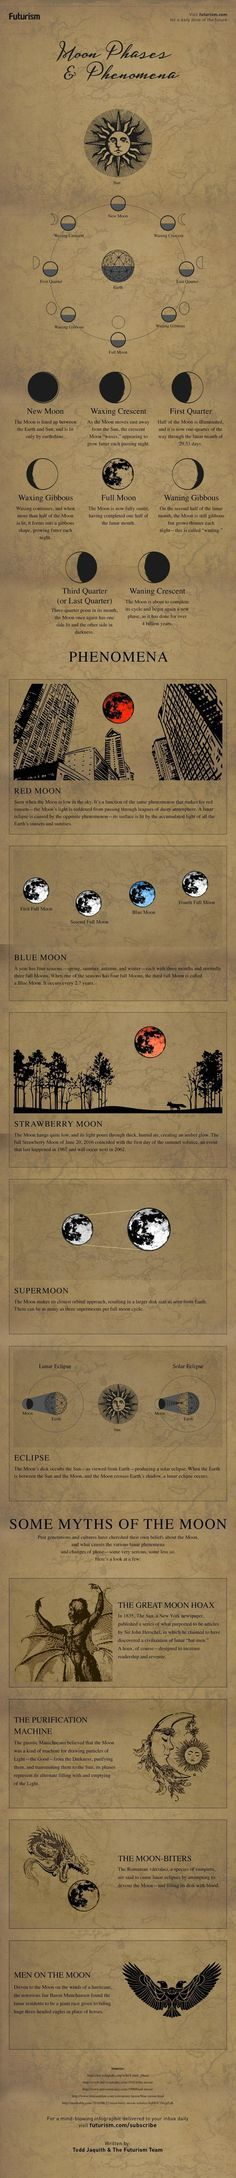 The Moon has fascinated us for centuries and inspired countless legends. Let's�